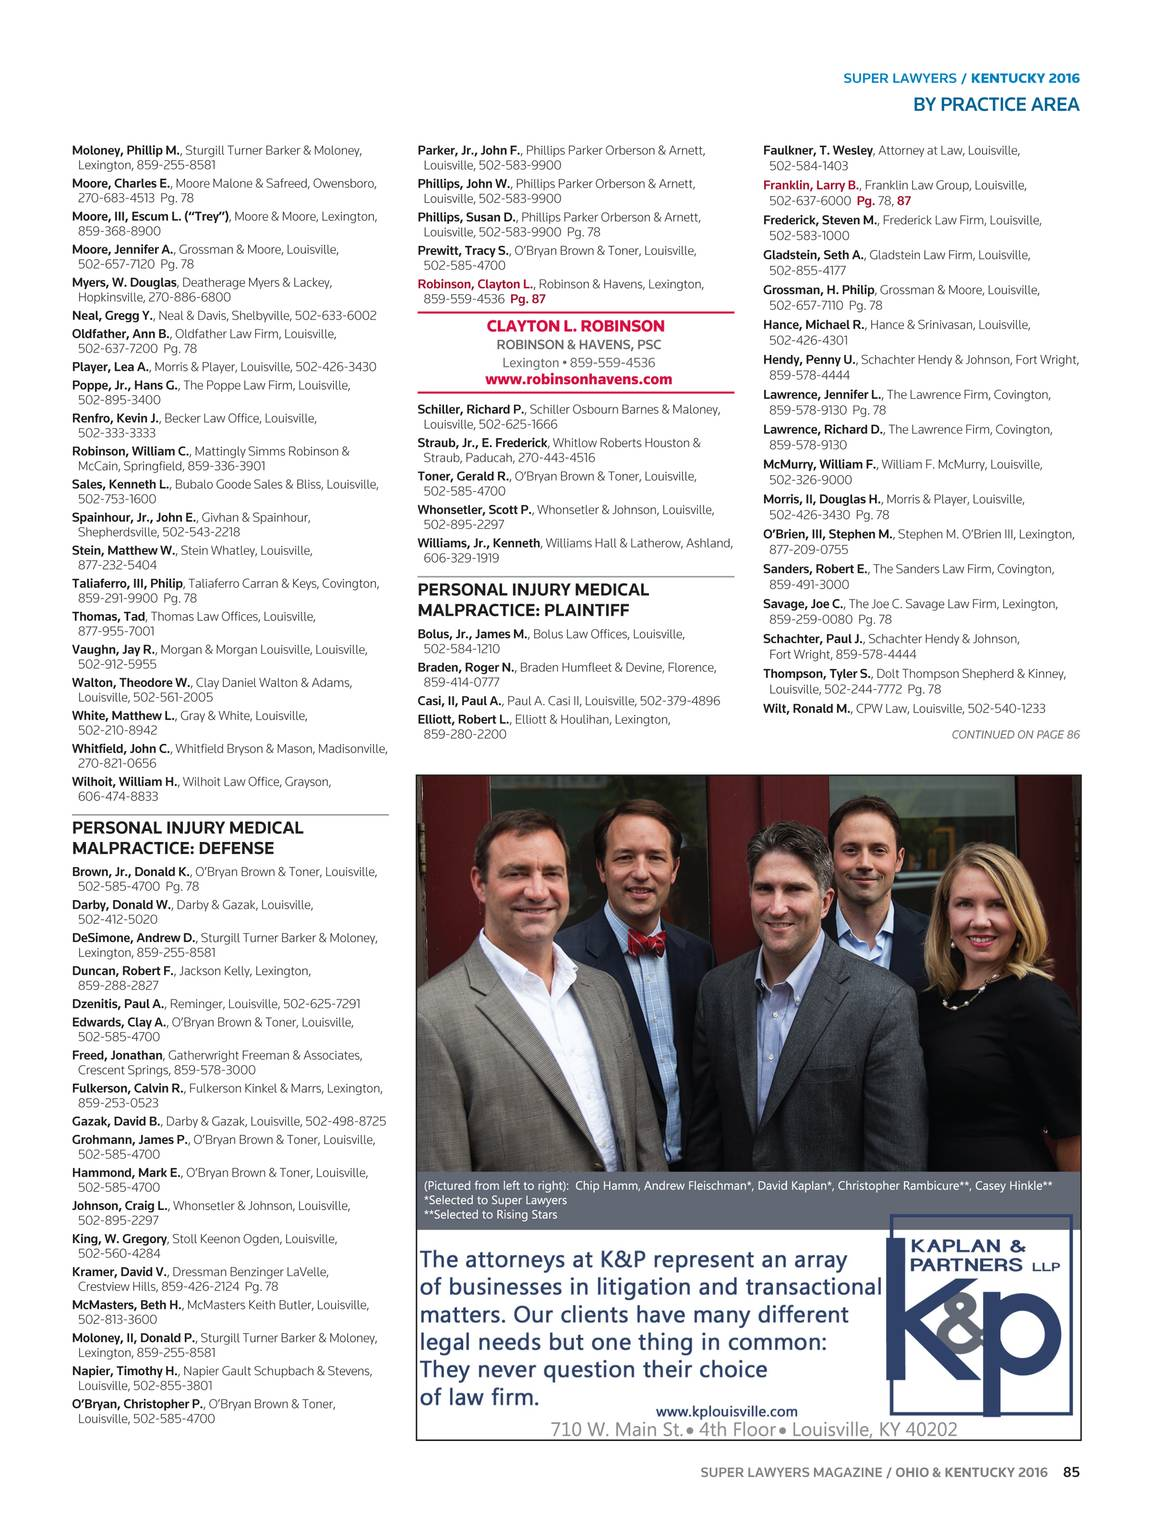 Super Lawyers - Ohio and Kentucky 2016 - page 86